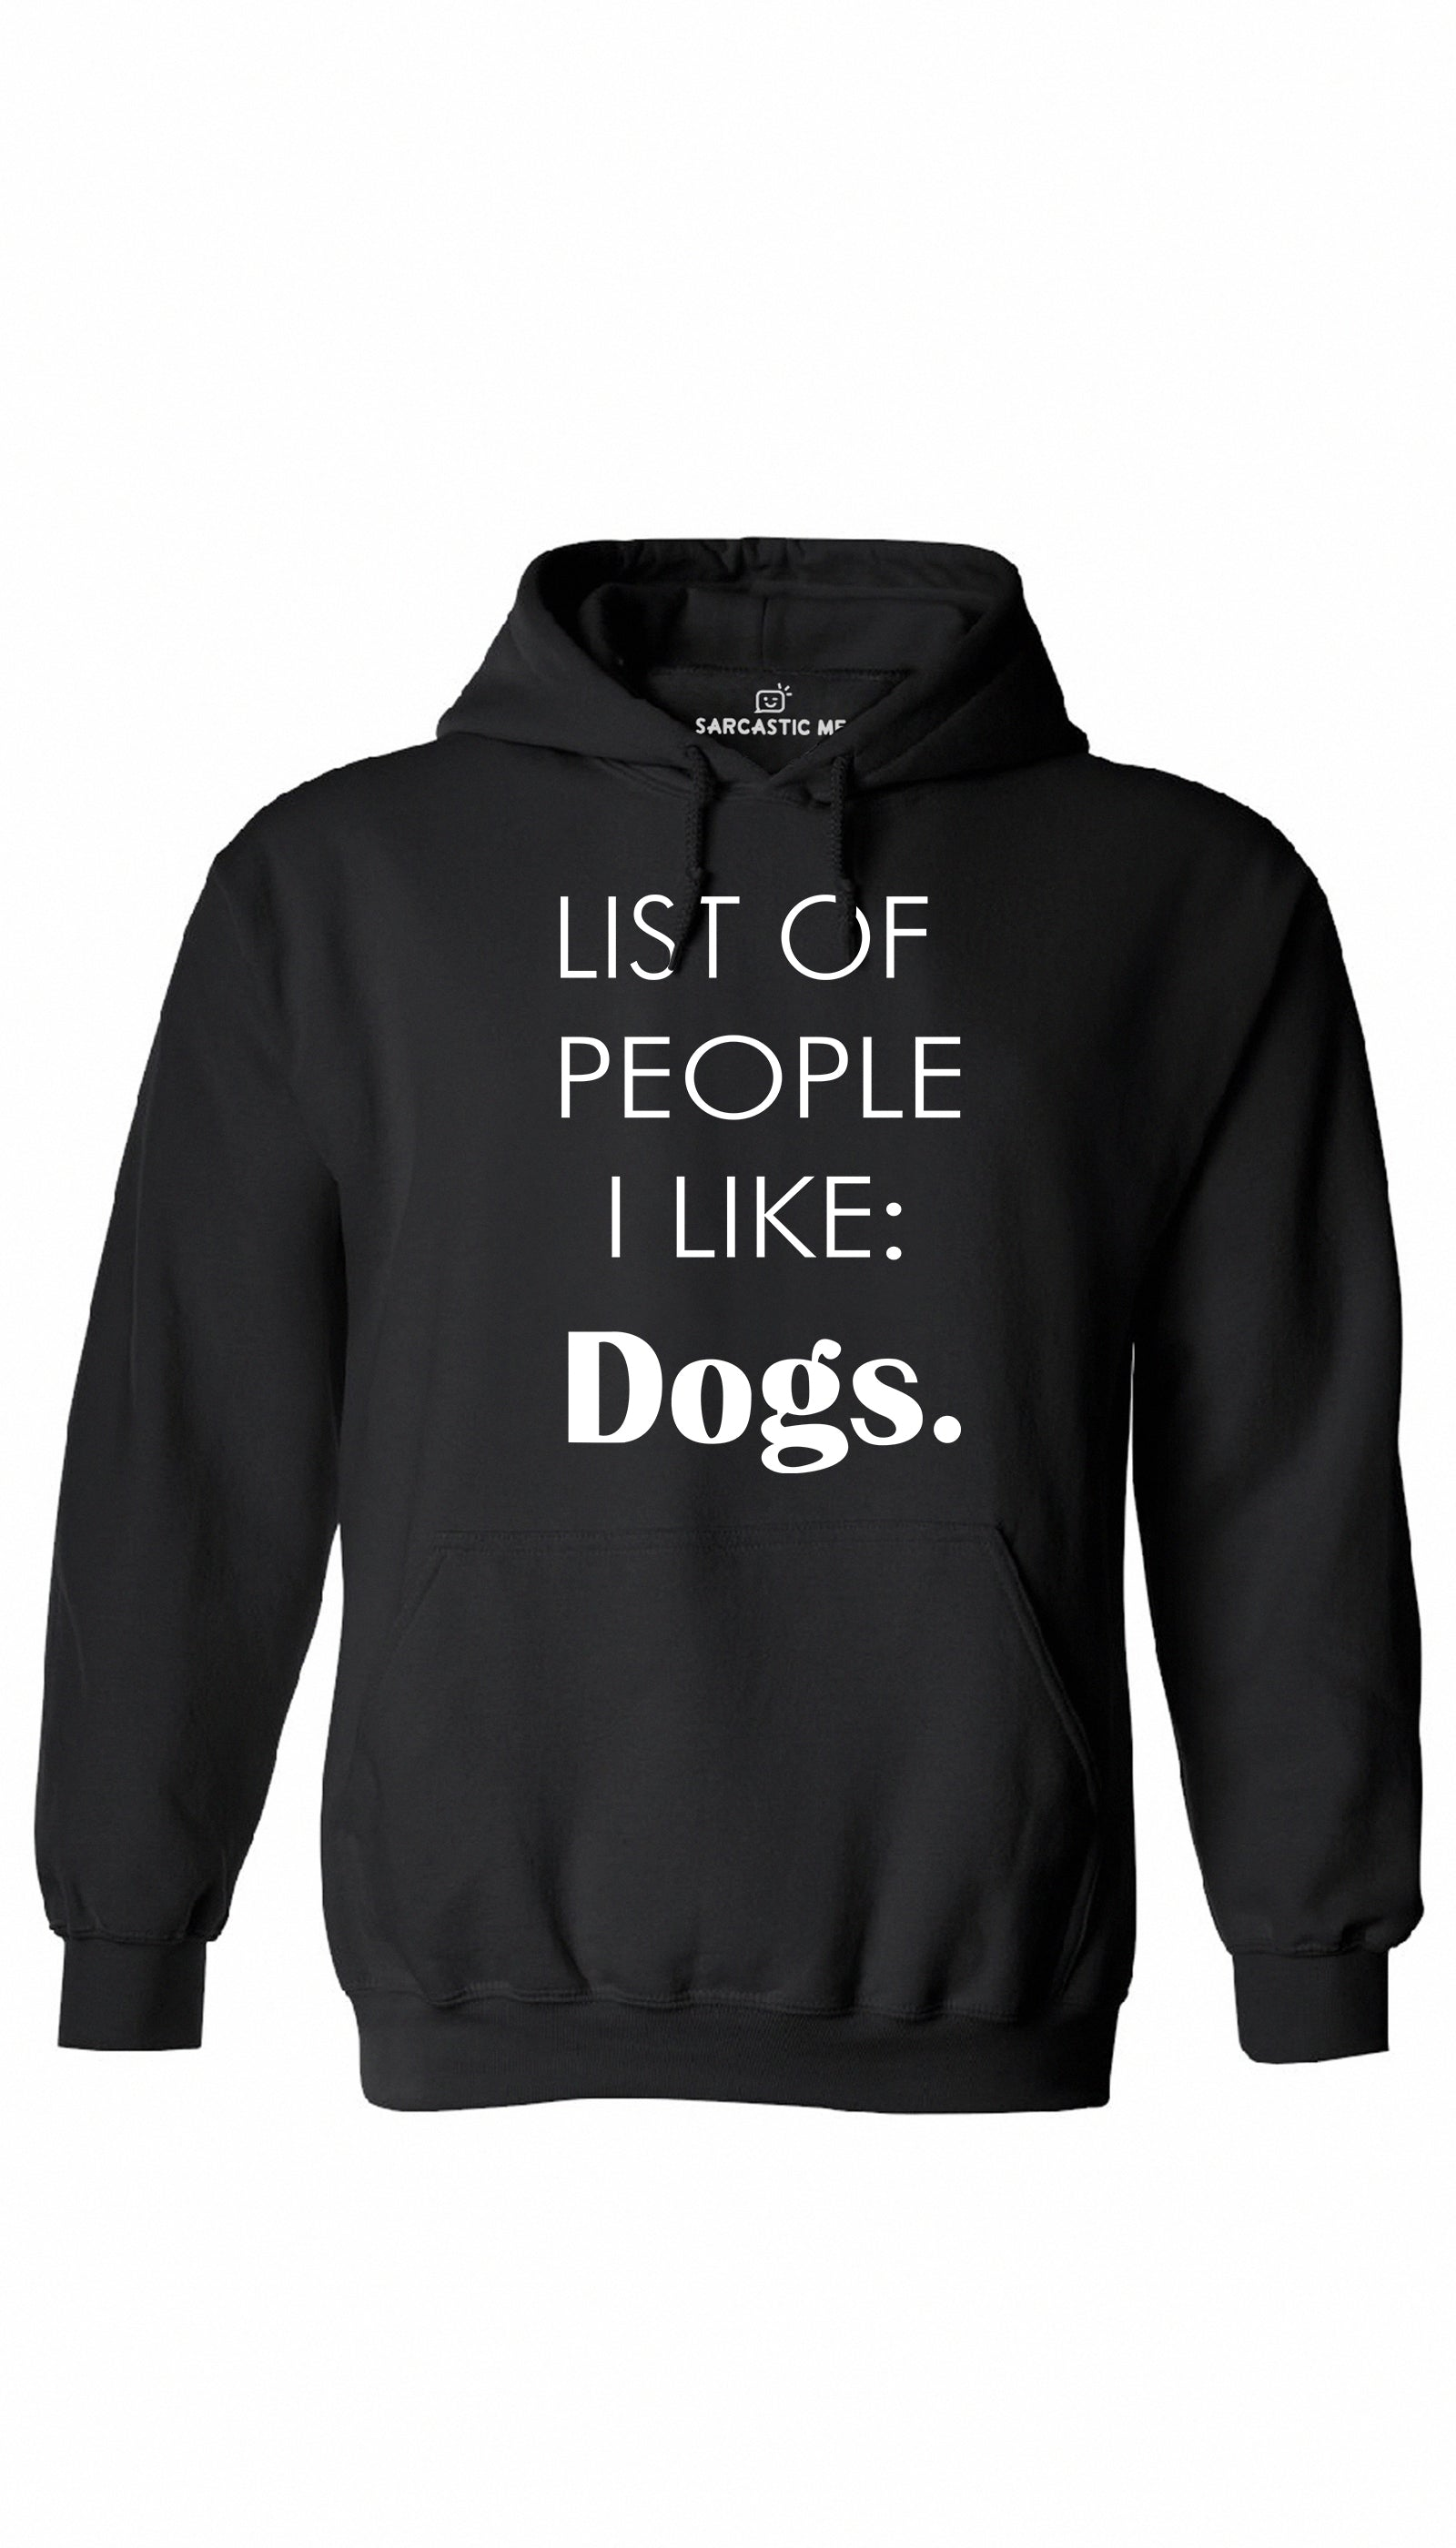 List of People I Like: Dogs Black Hoodie | Sarcastic ME